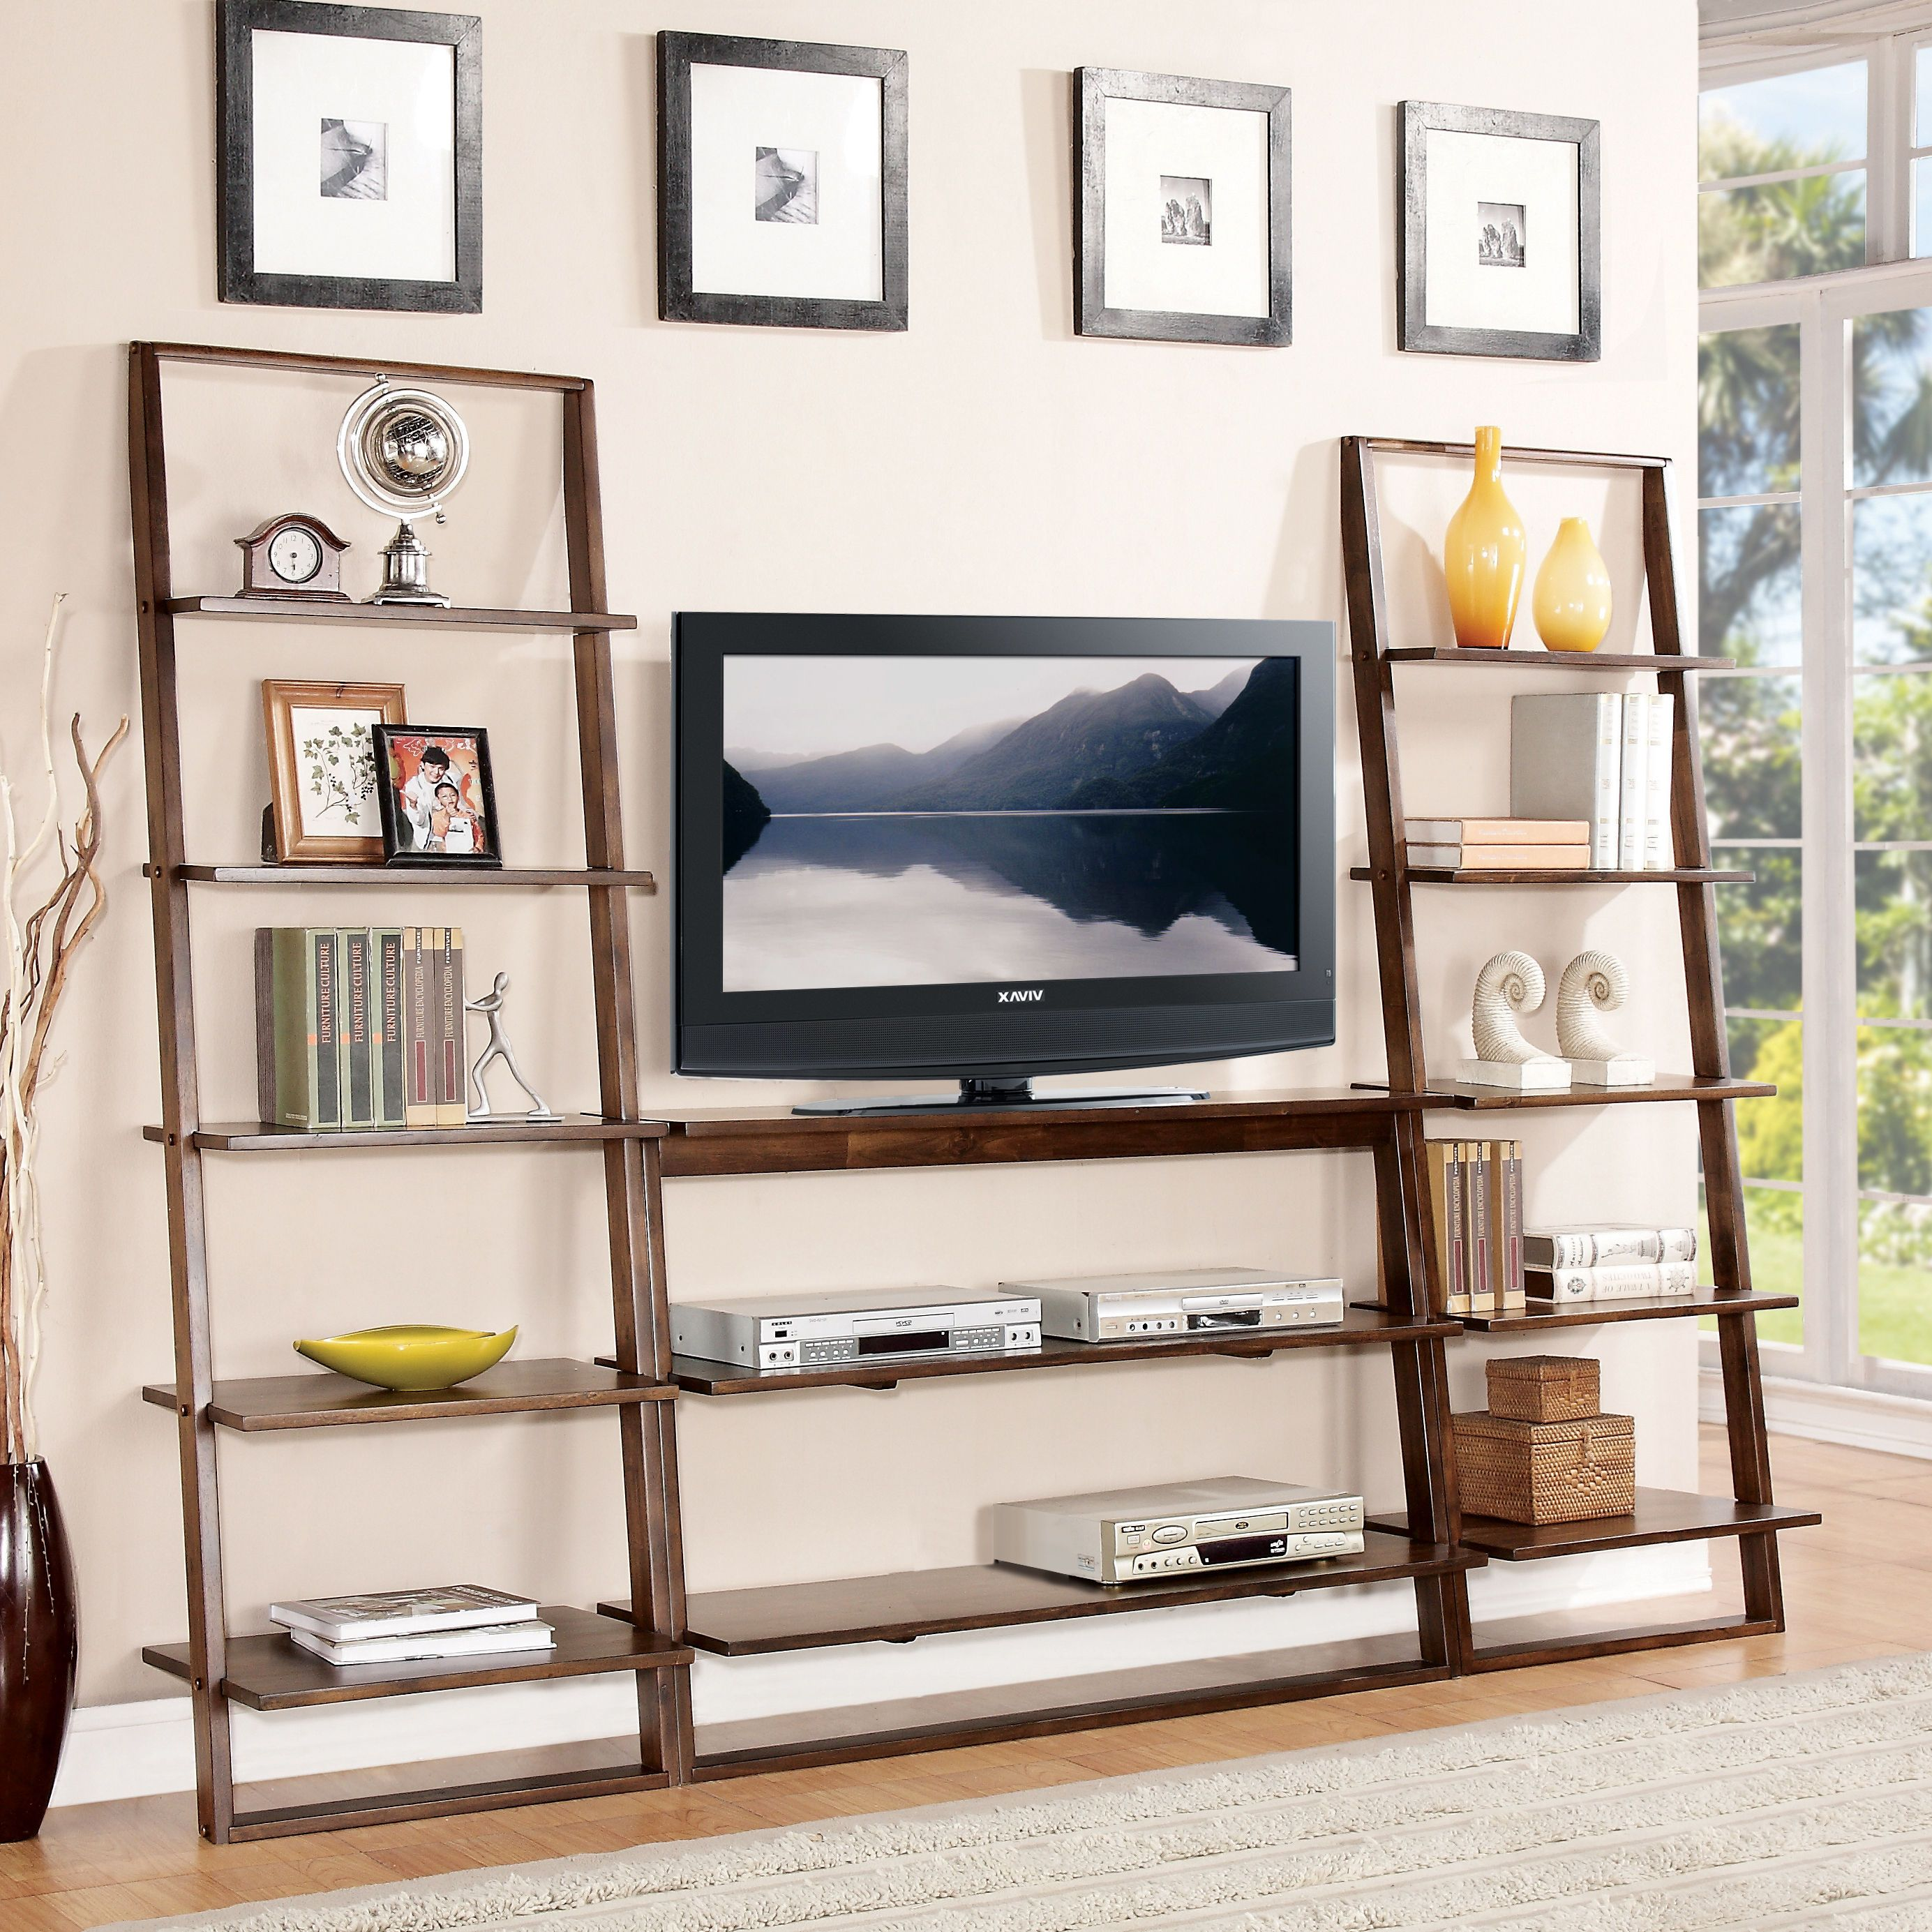 q rustic bookcase the stand inspire industrial piece tv set with myra modern by bookcases classic inch pin vintage are